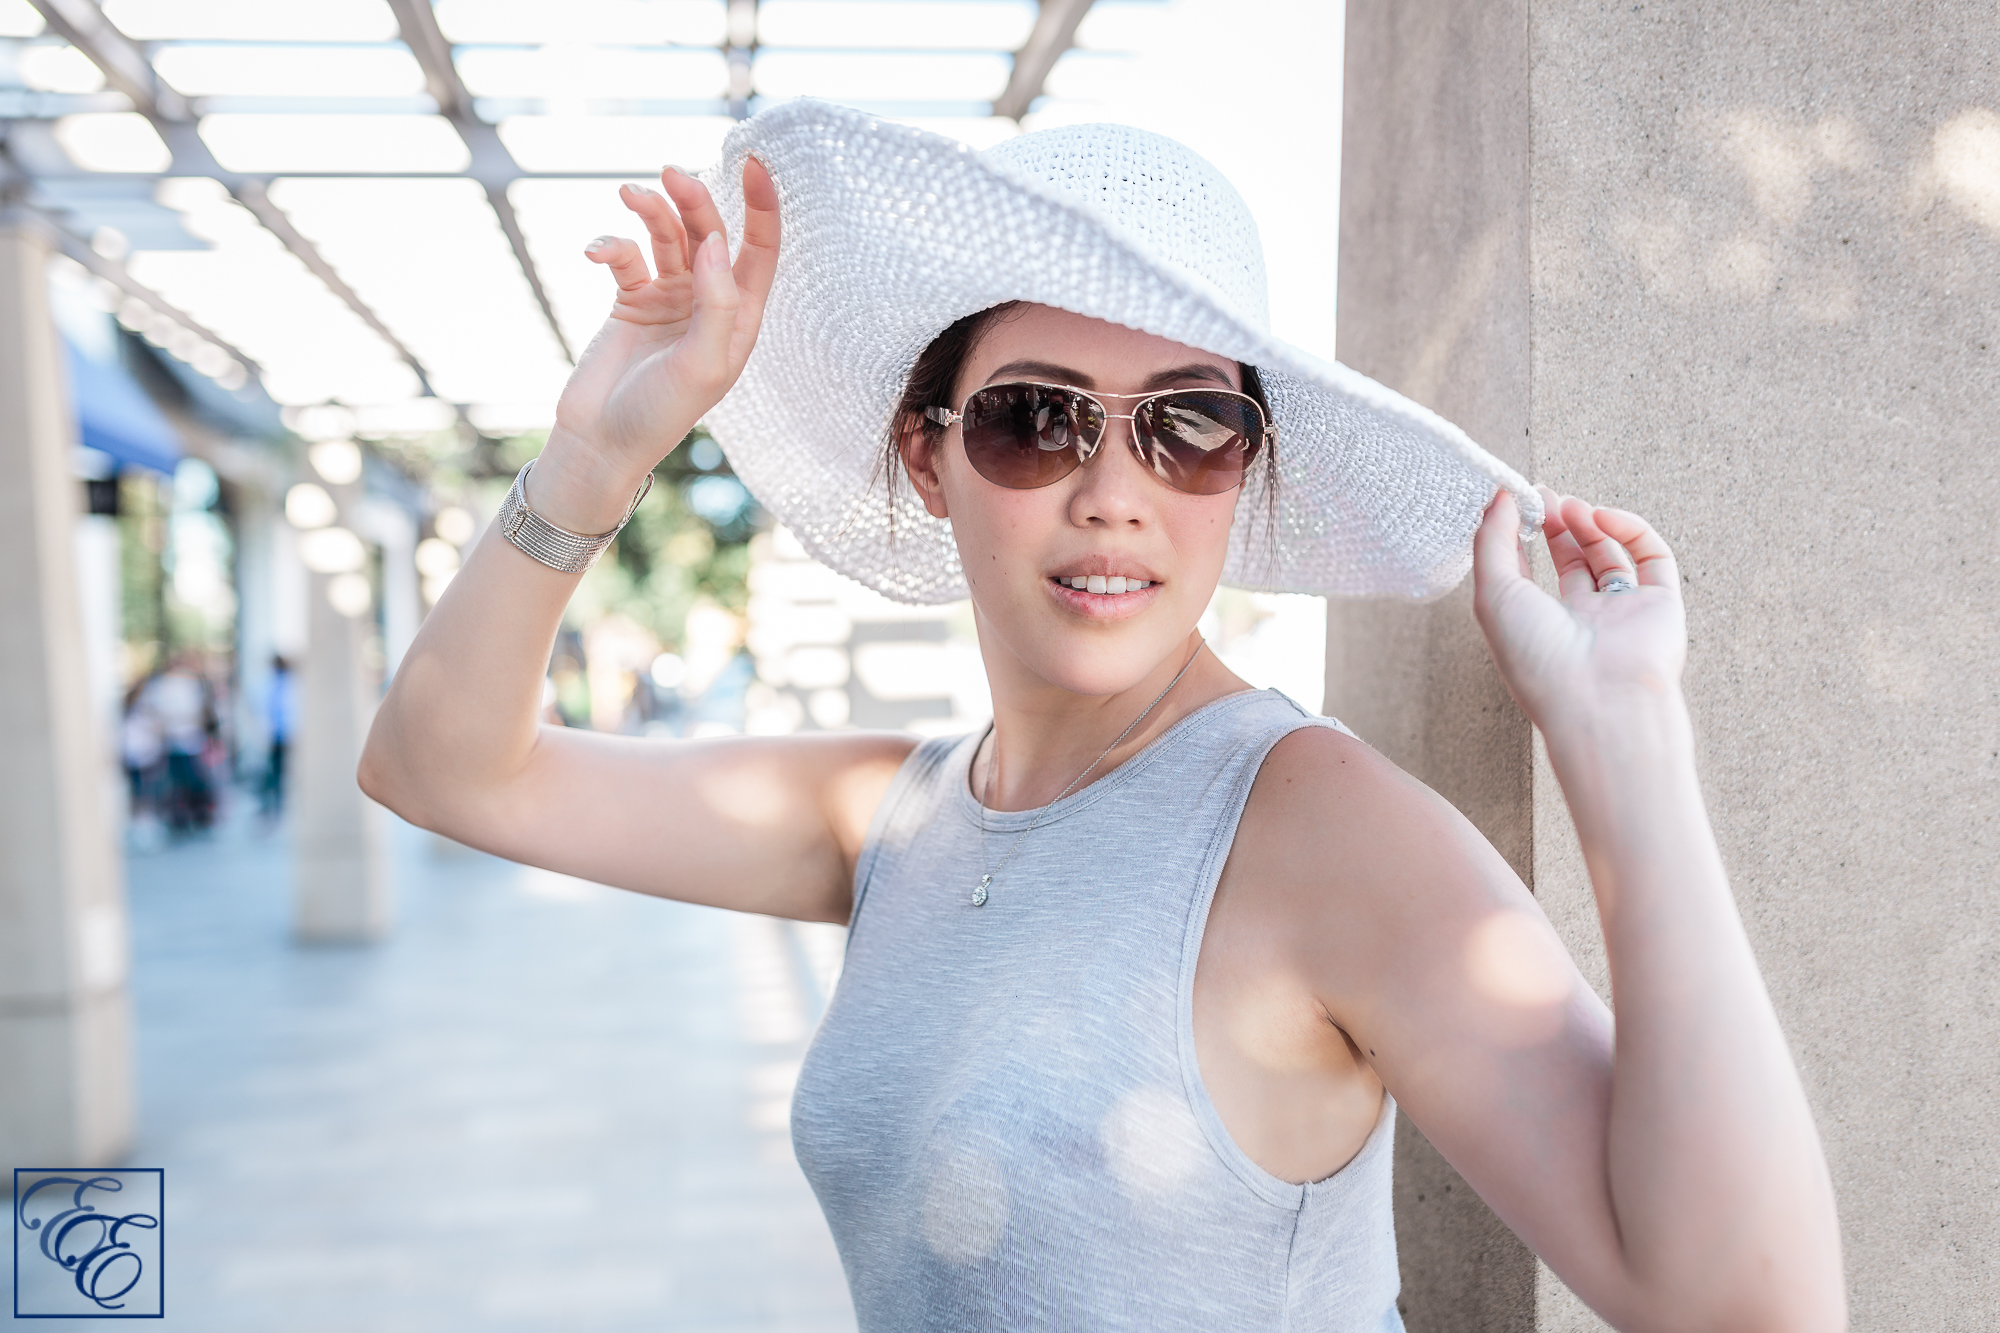 Post-pregnancy new mom style: loosely-flowing dress, wide-brimmed sunhat and sunglasses